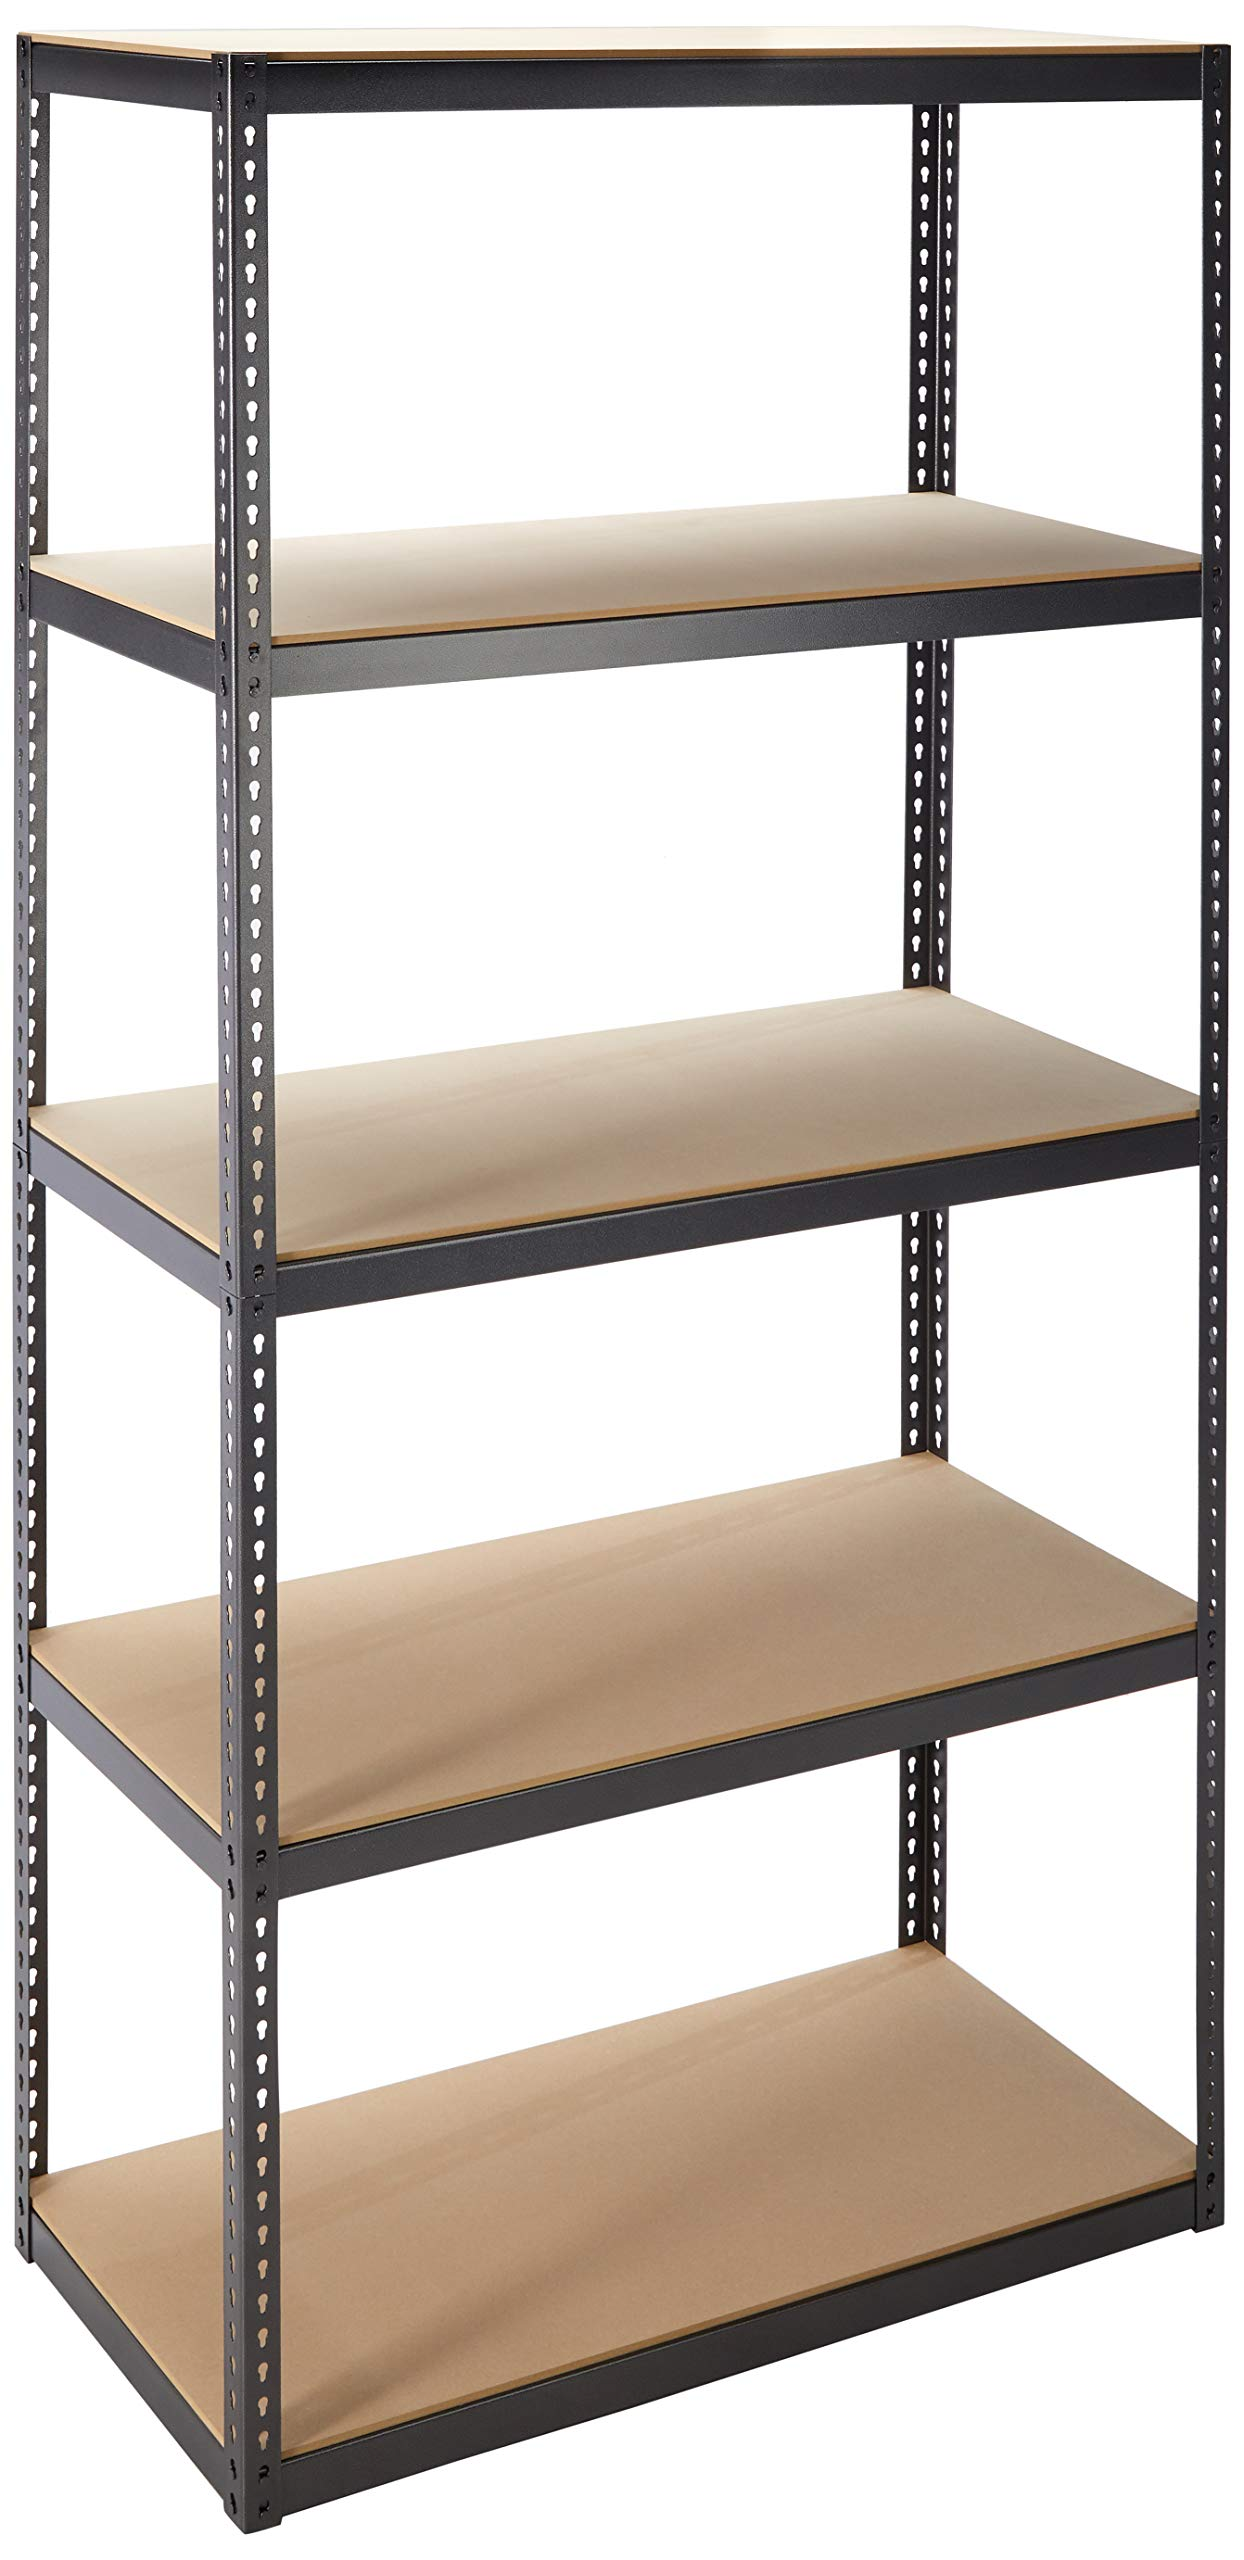 Jaken Co. SCB0850D 5 Shelf Storage Unit, 16'' x 36'' x 72''